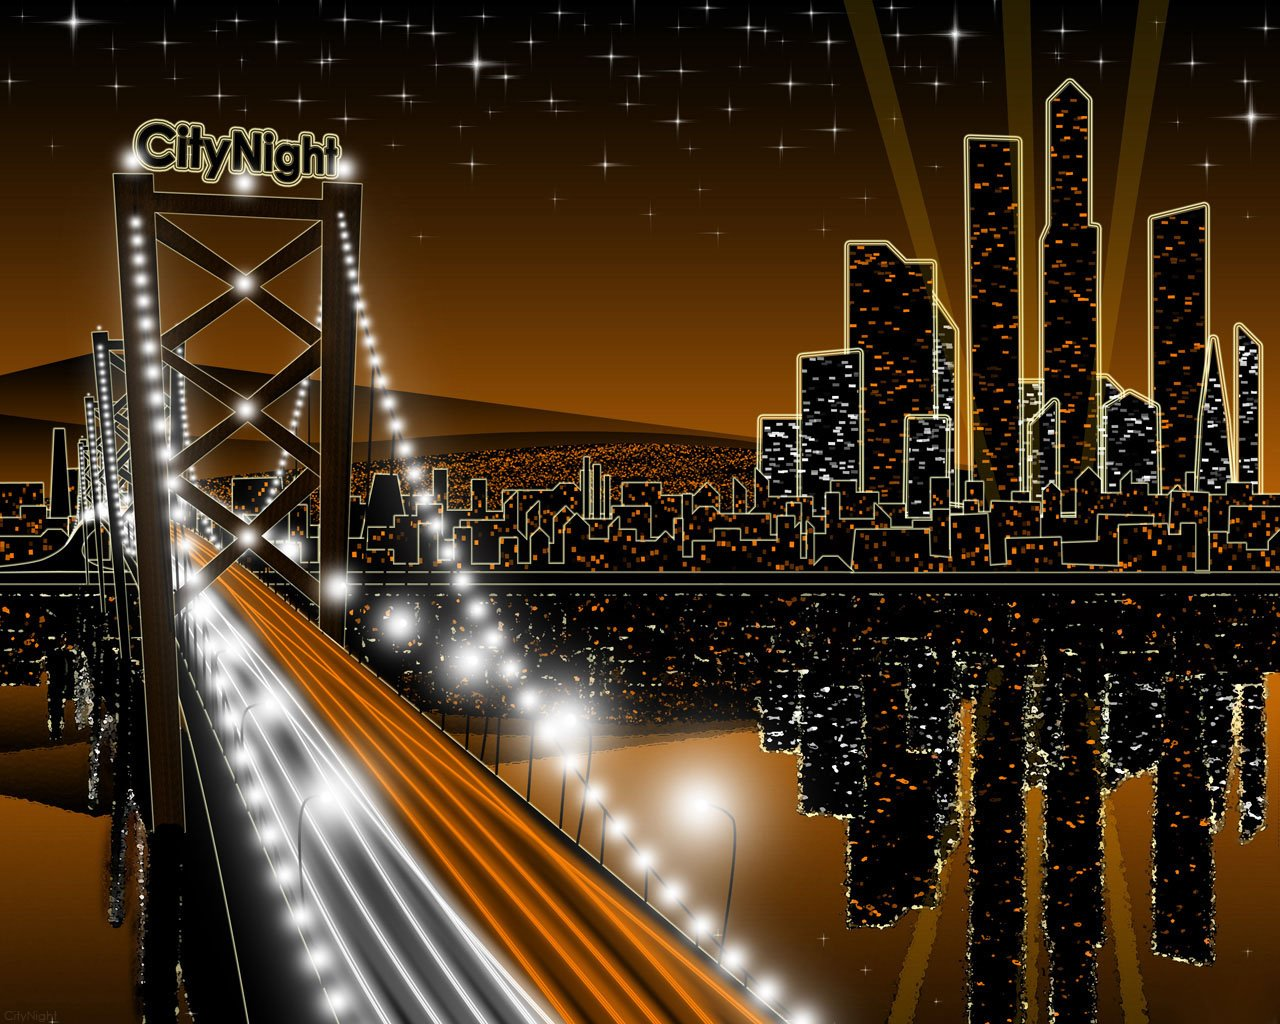 Night Time City Wallpaper Wallpapersafari